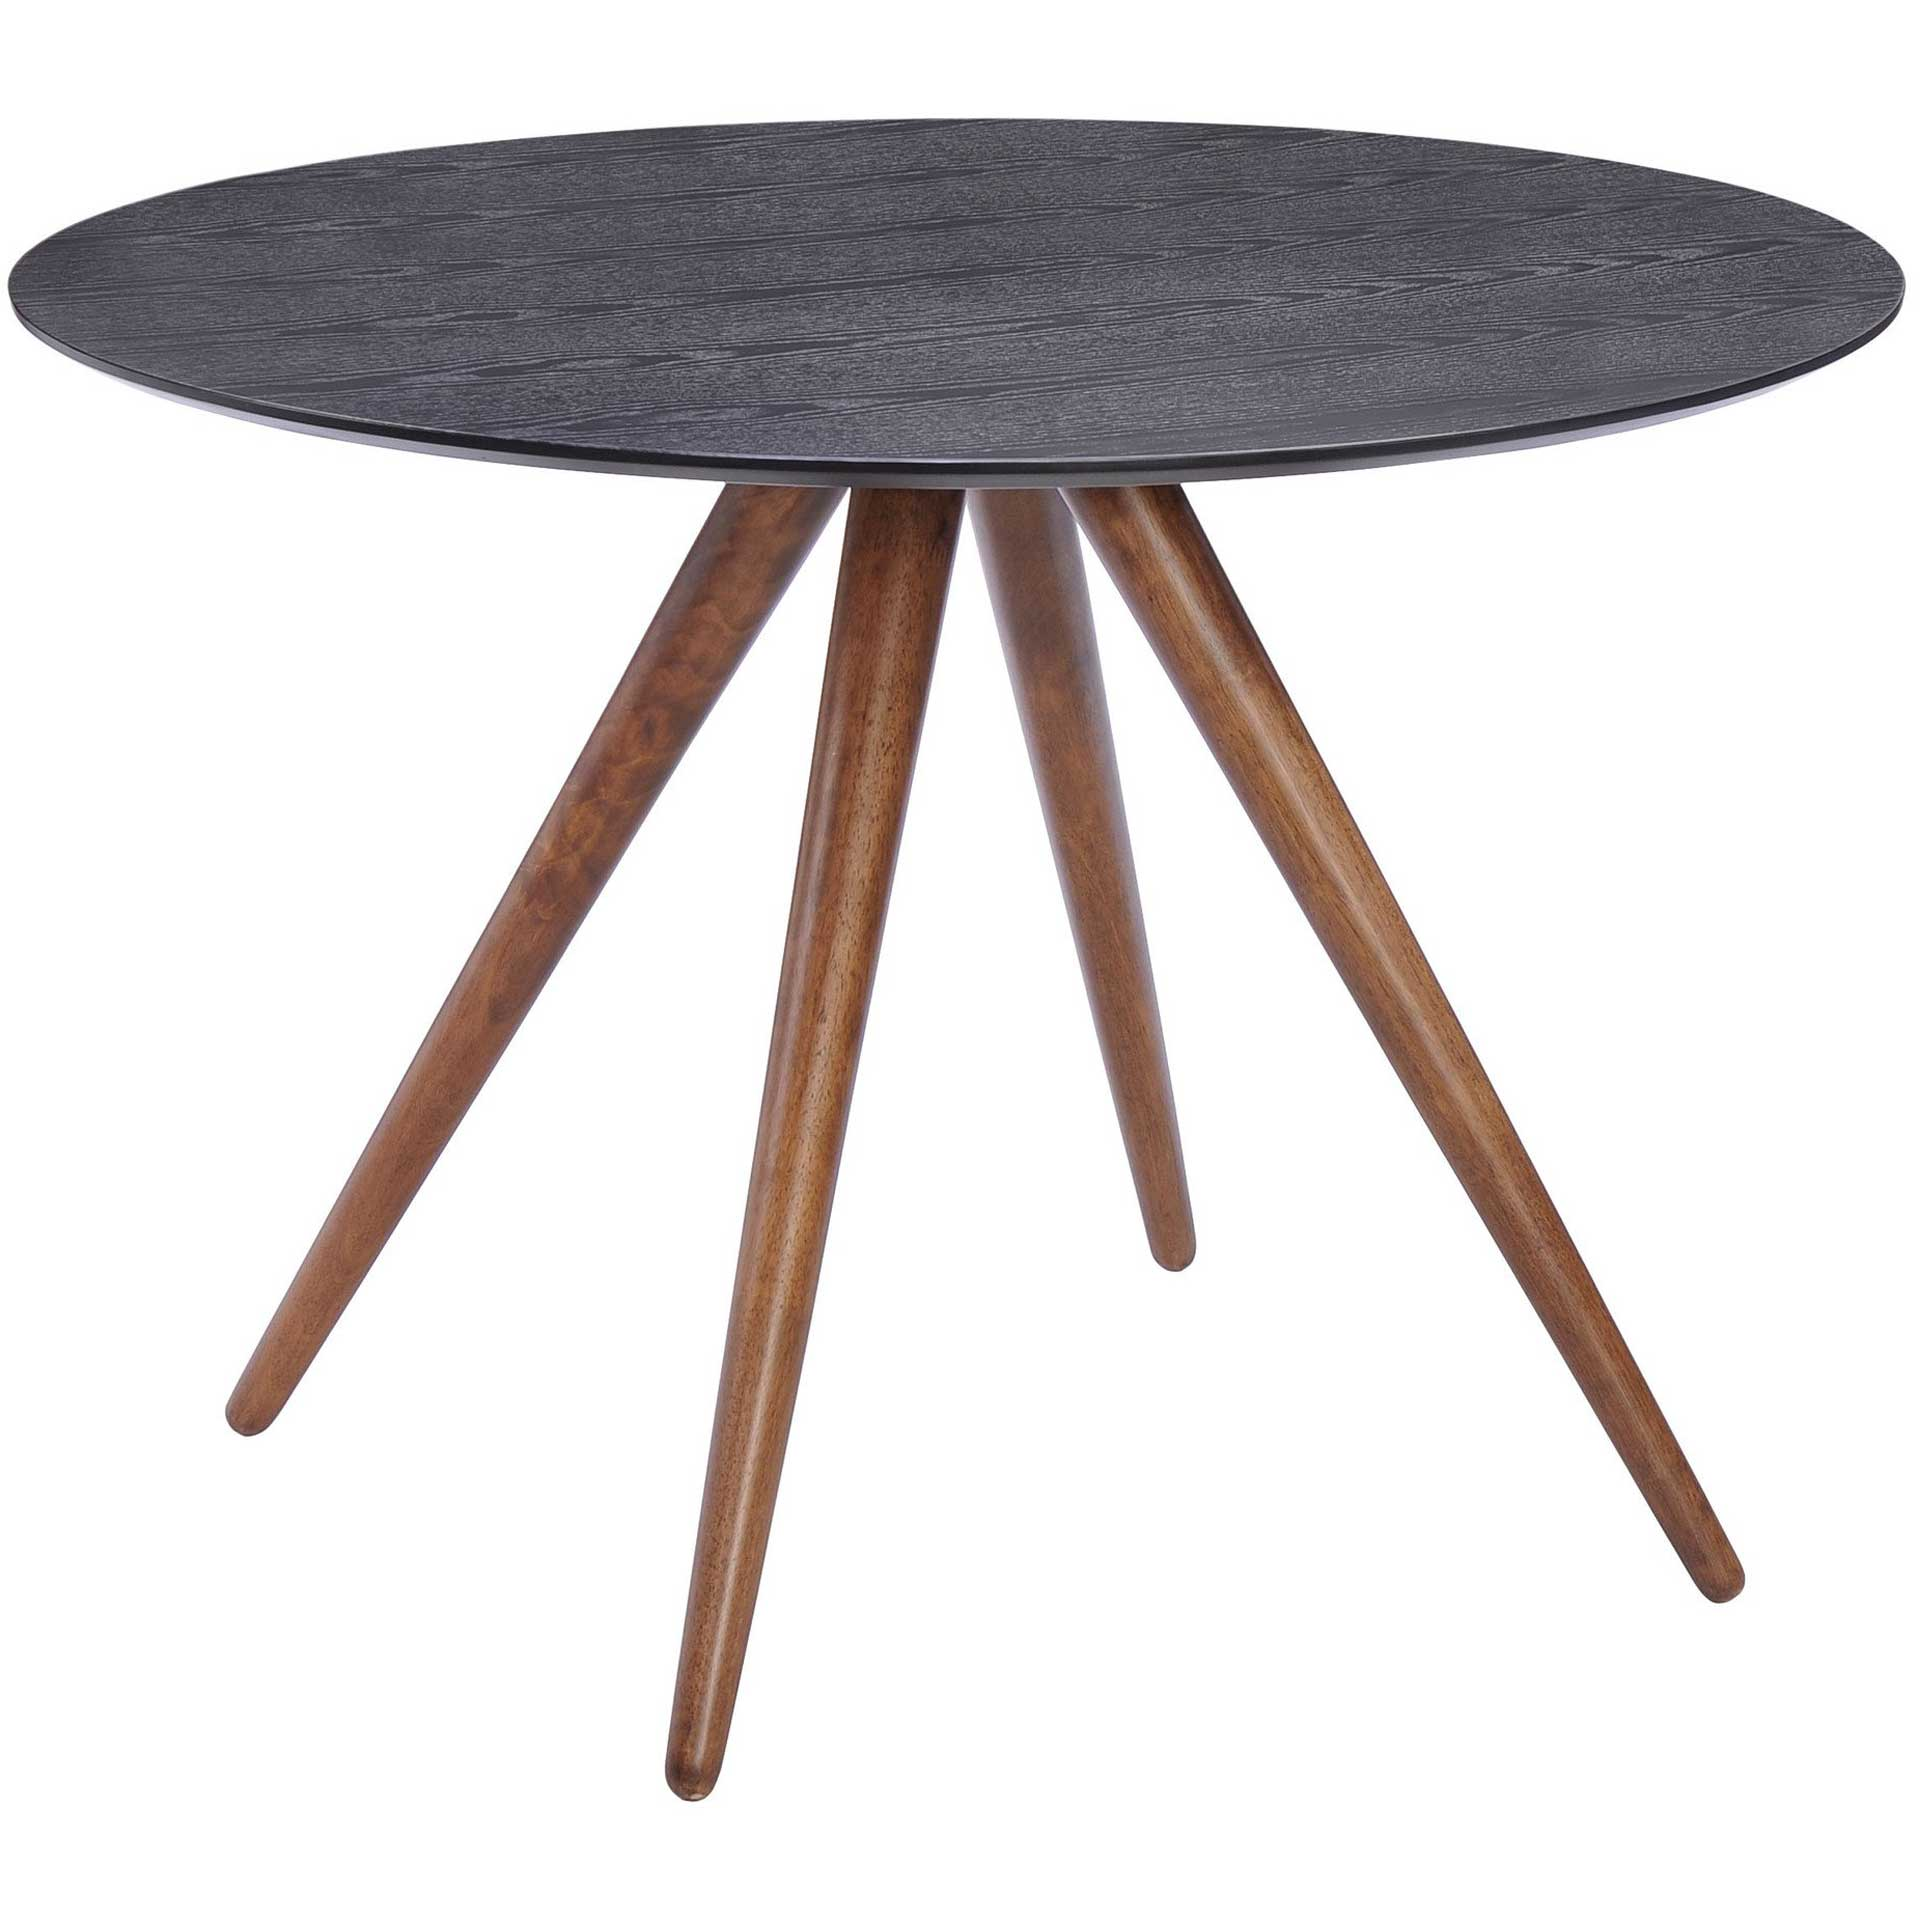 Grapeview Dining Table Walnut & Black